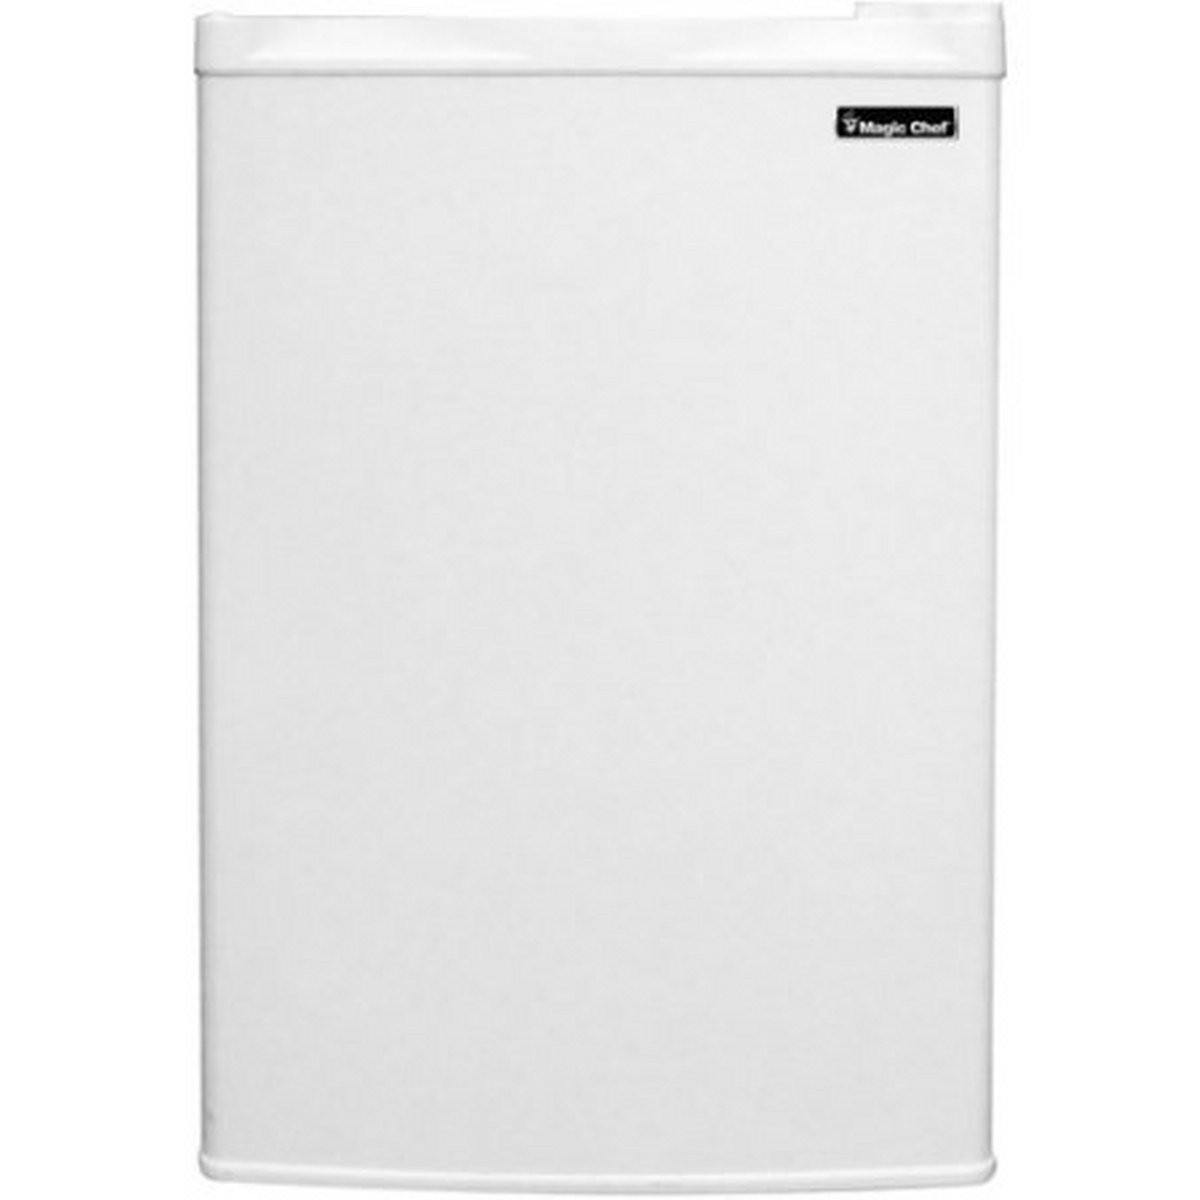 Magic Chef 3.0 cu ft Upright Freezer, White, Flush-back design saves space in your home or office by Magic Chef